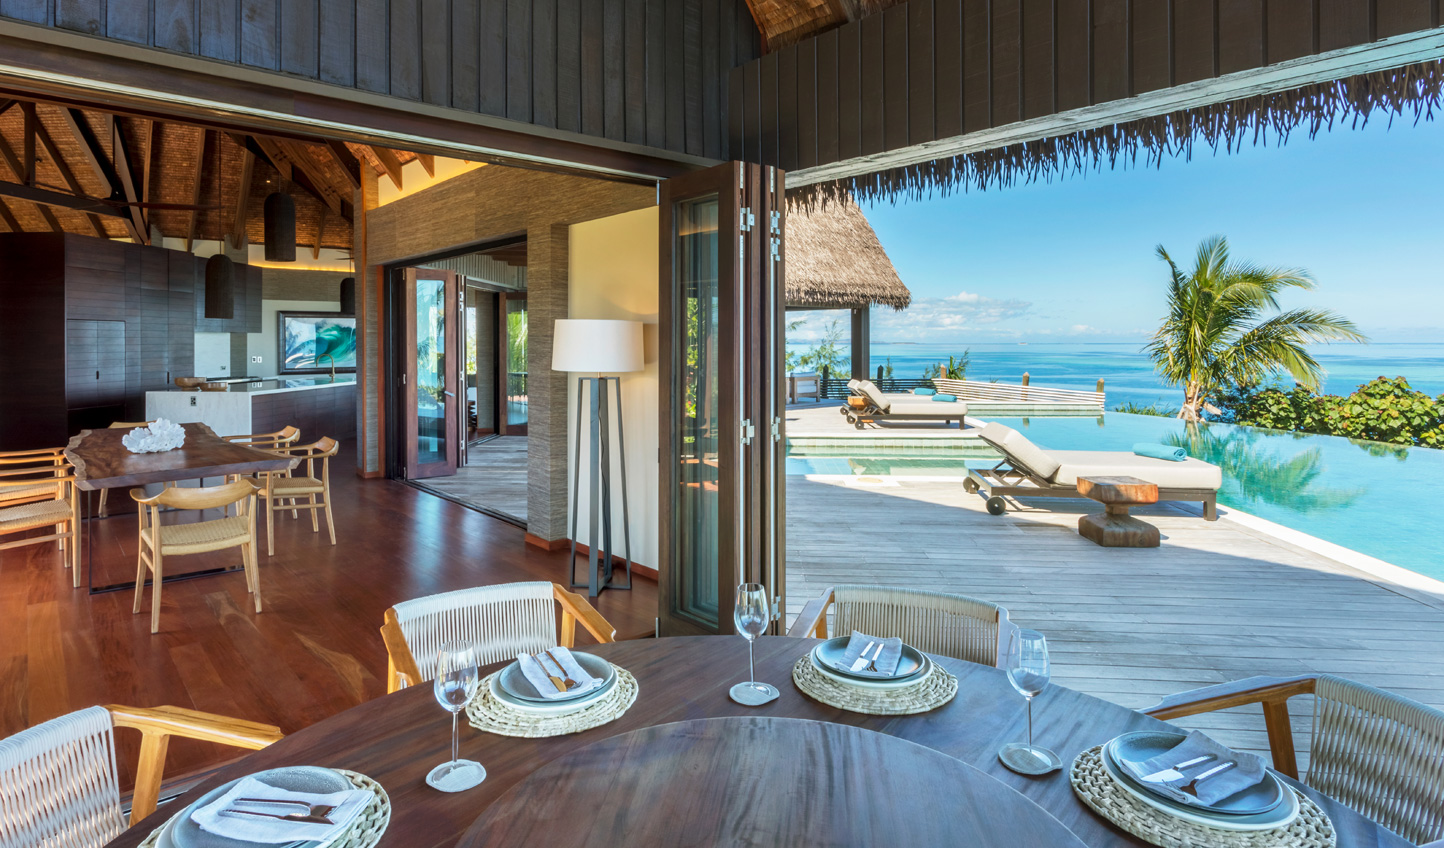 Take up residence at Six Senses Fiji and easily find reason not to leave